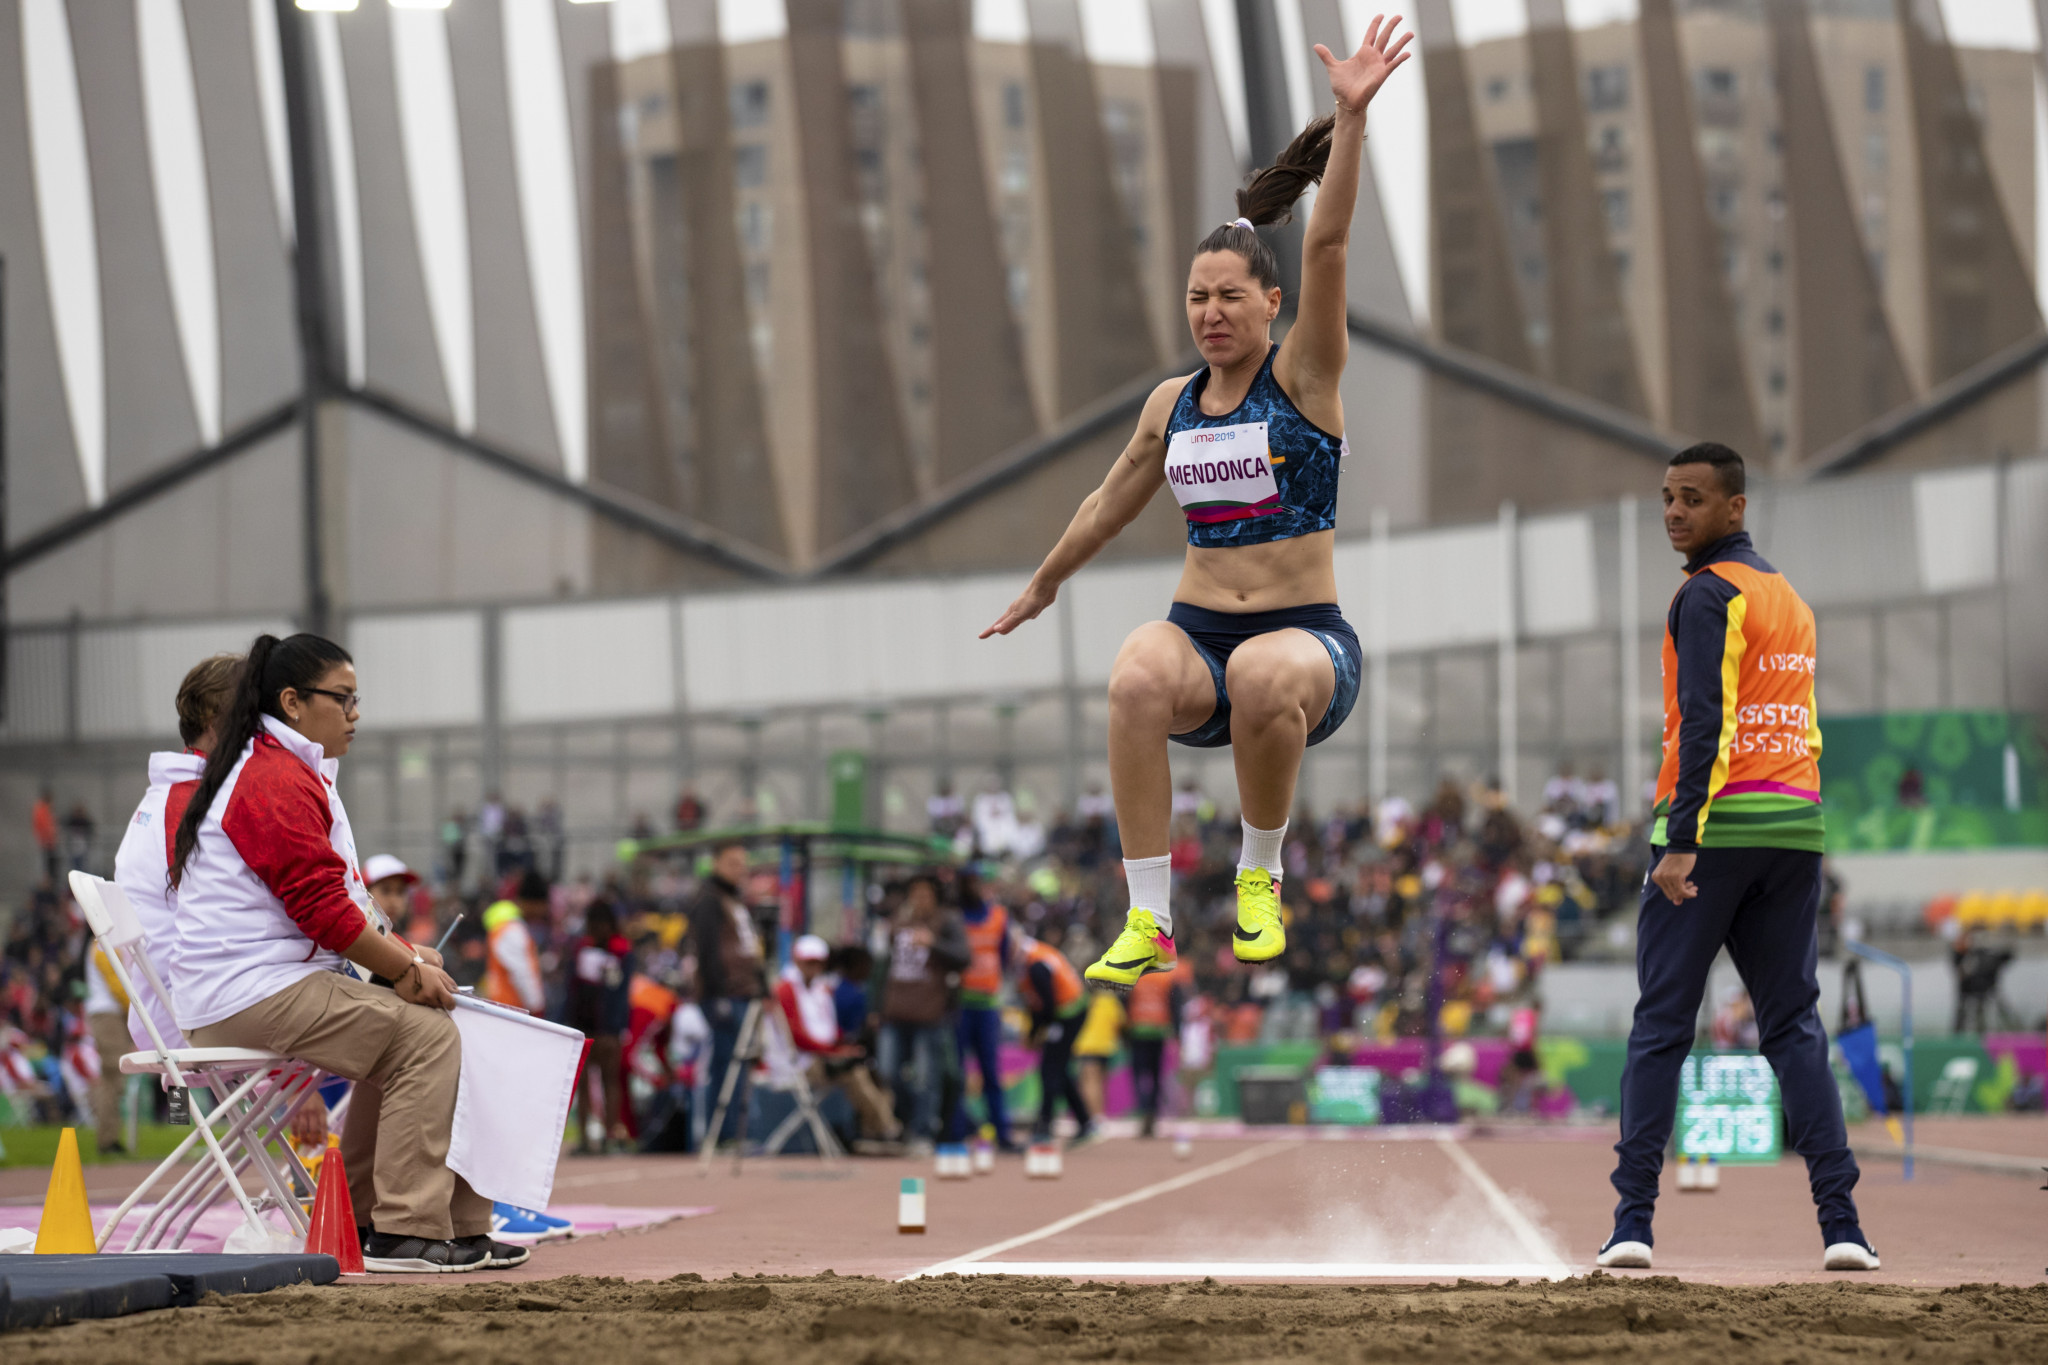 Brazil's Gabriela Mendonca broke a Parapan American Games record to win the women's long jump T11/12 ©Getty Images